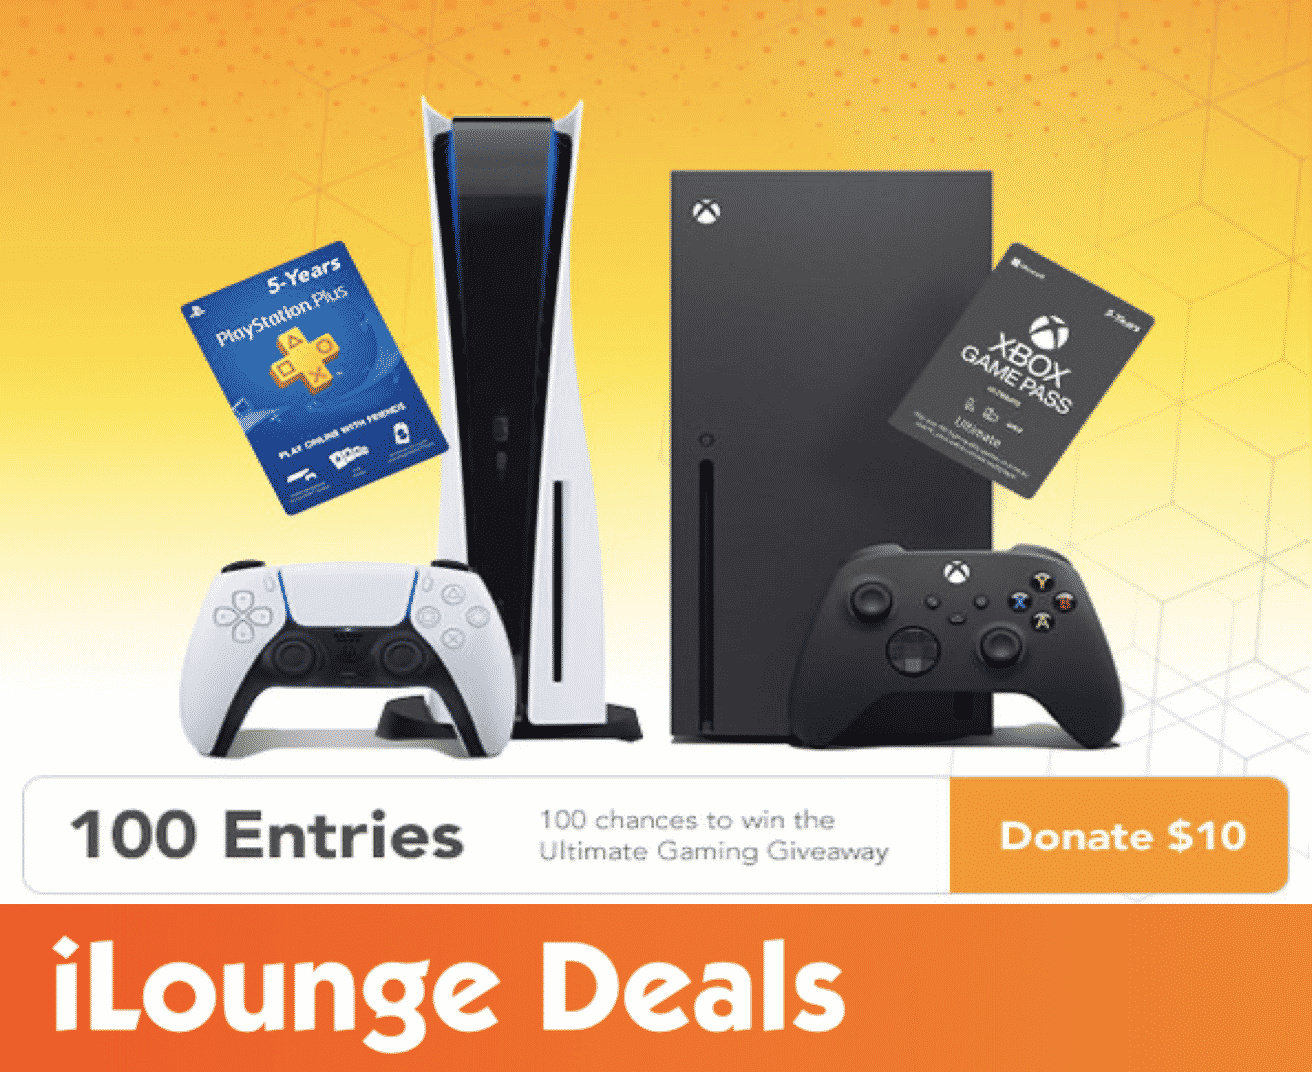 100 Entries to Win the Ultimate Gaming Giveaway & Donate to Charity